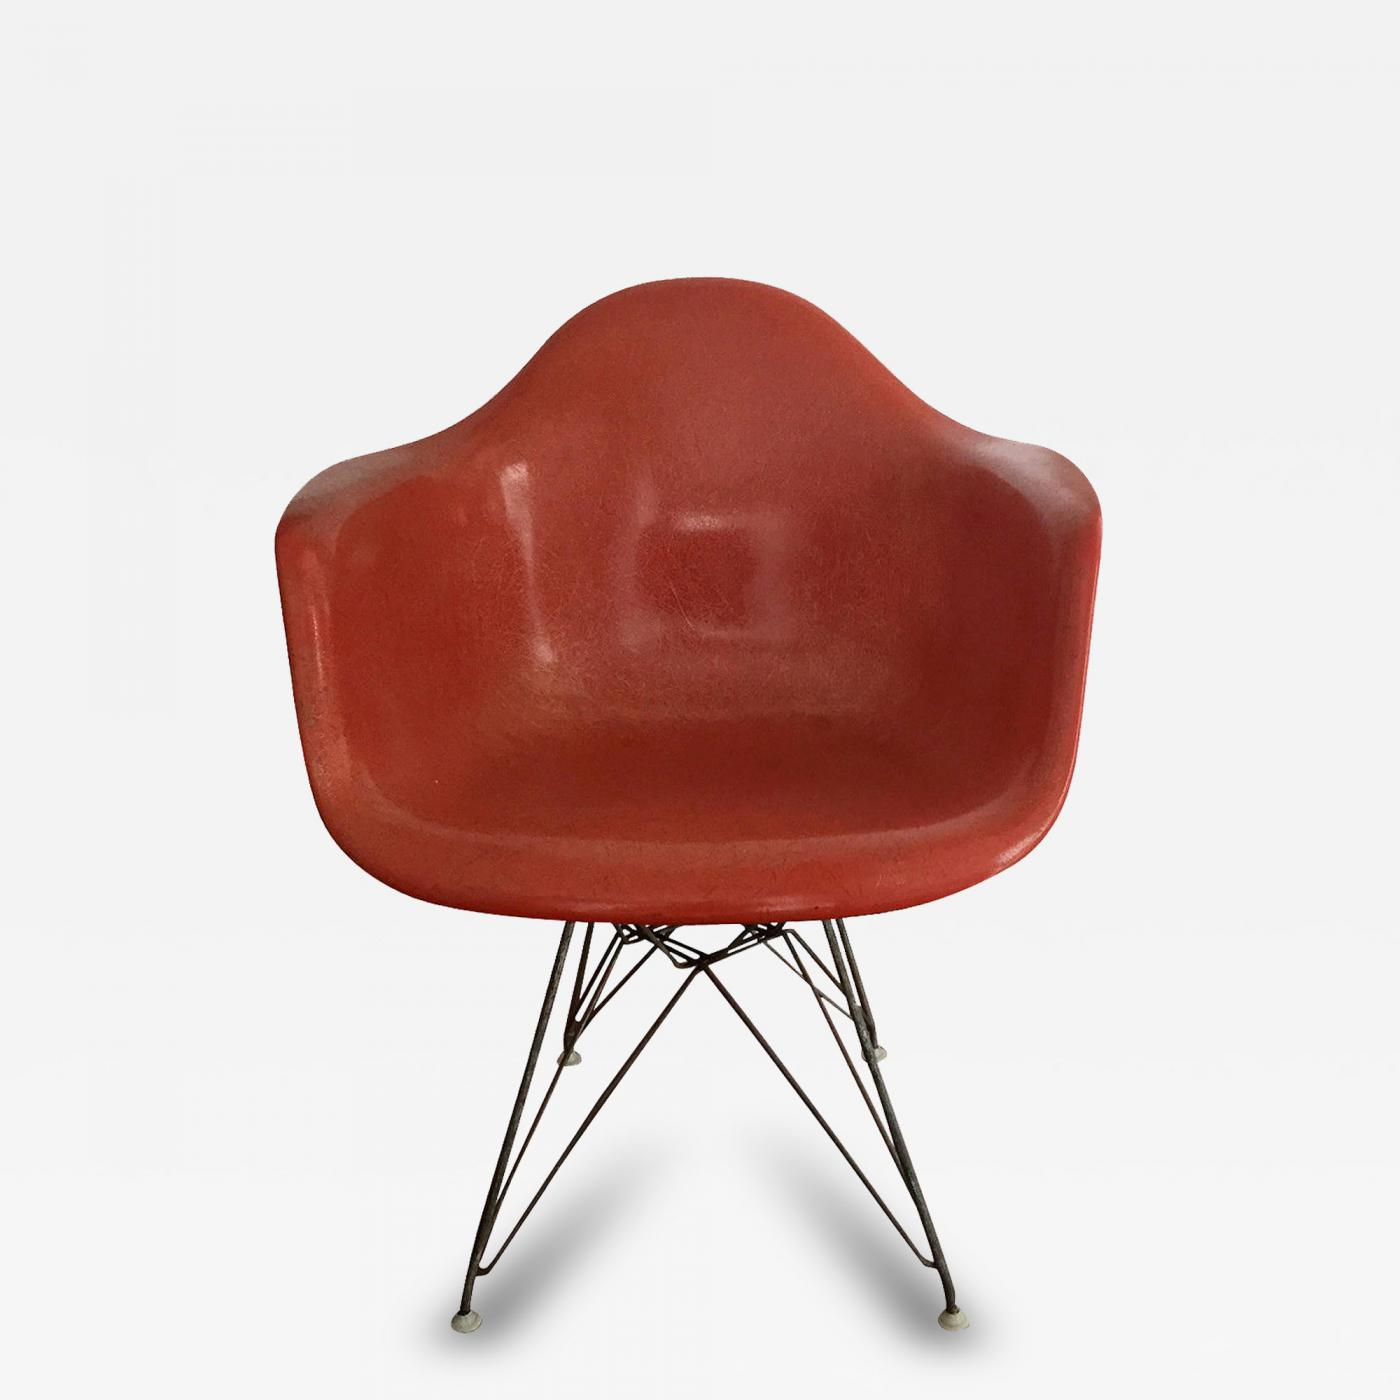 fiberglass shell chair multi colored accent chairs charles and ray eames early dar by